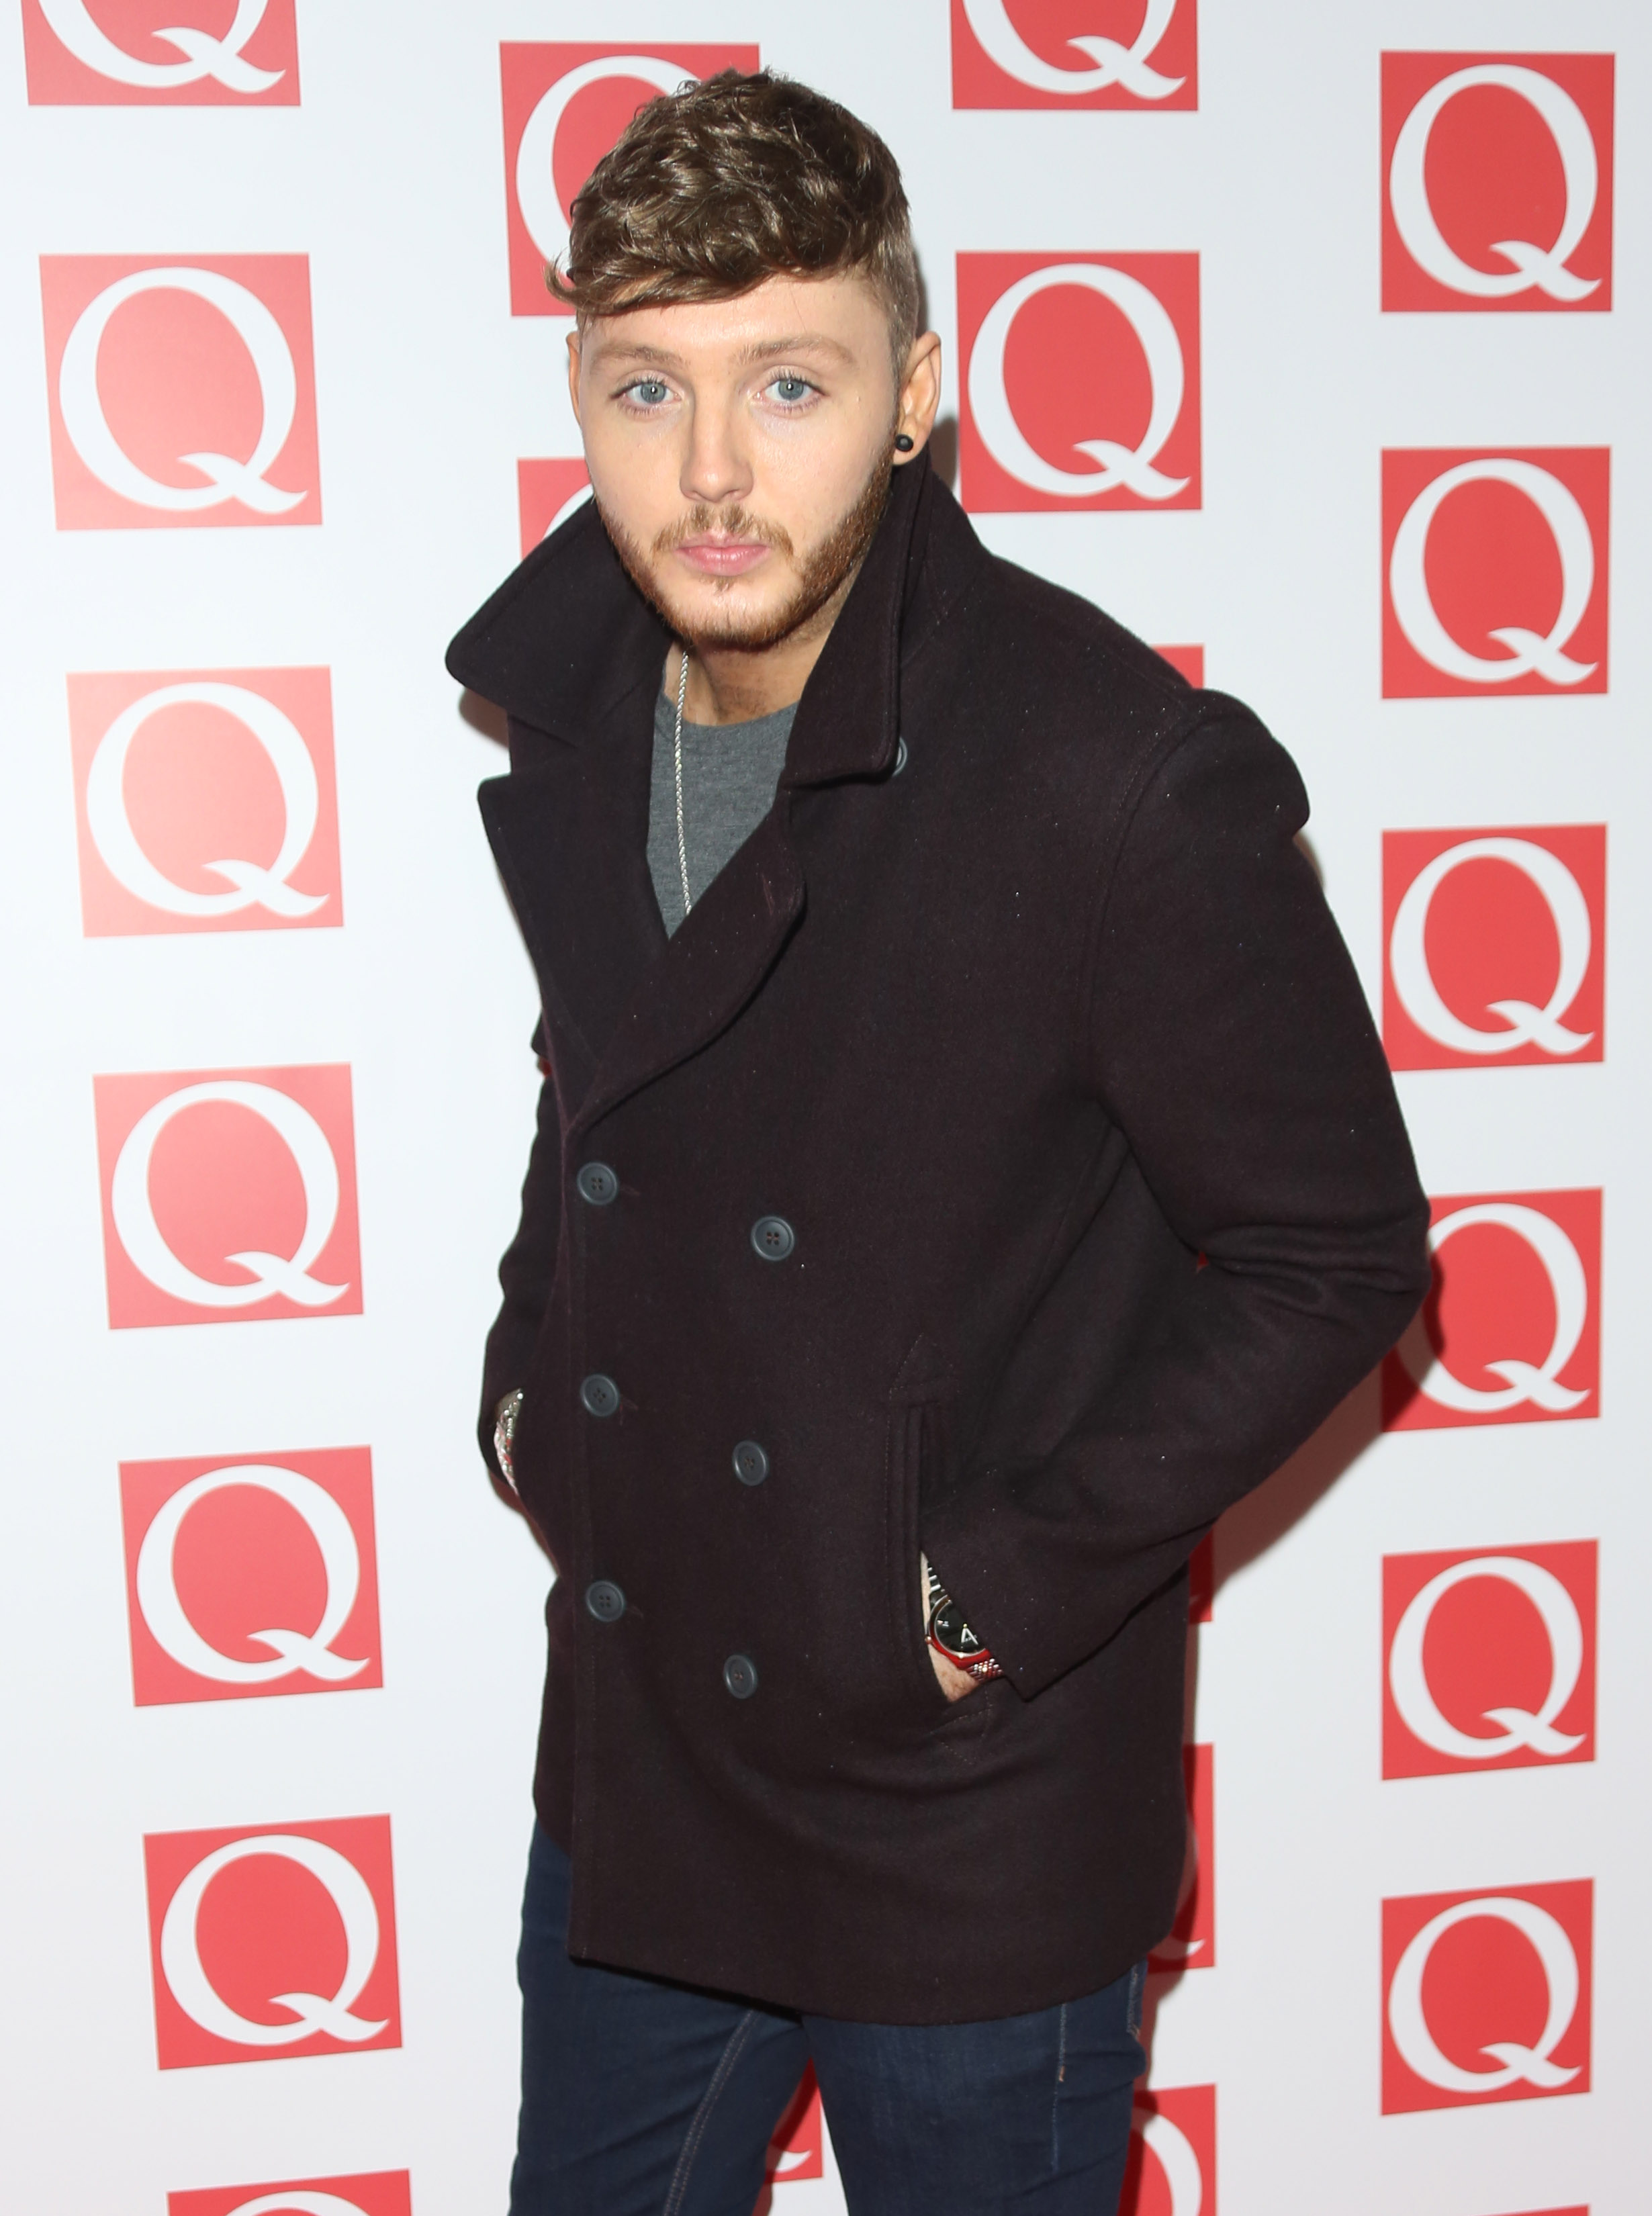 James Arthur na gali Q Awards 2013